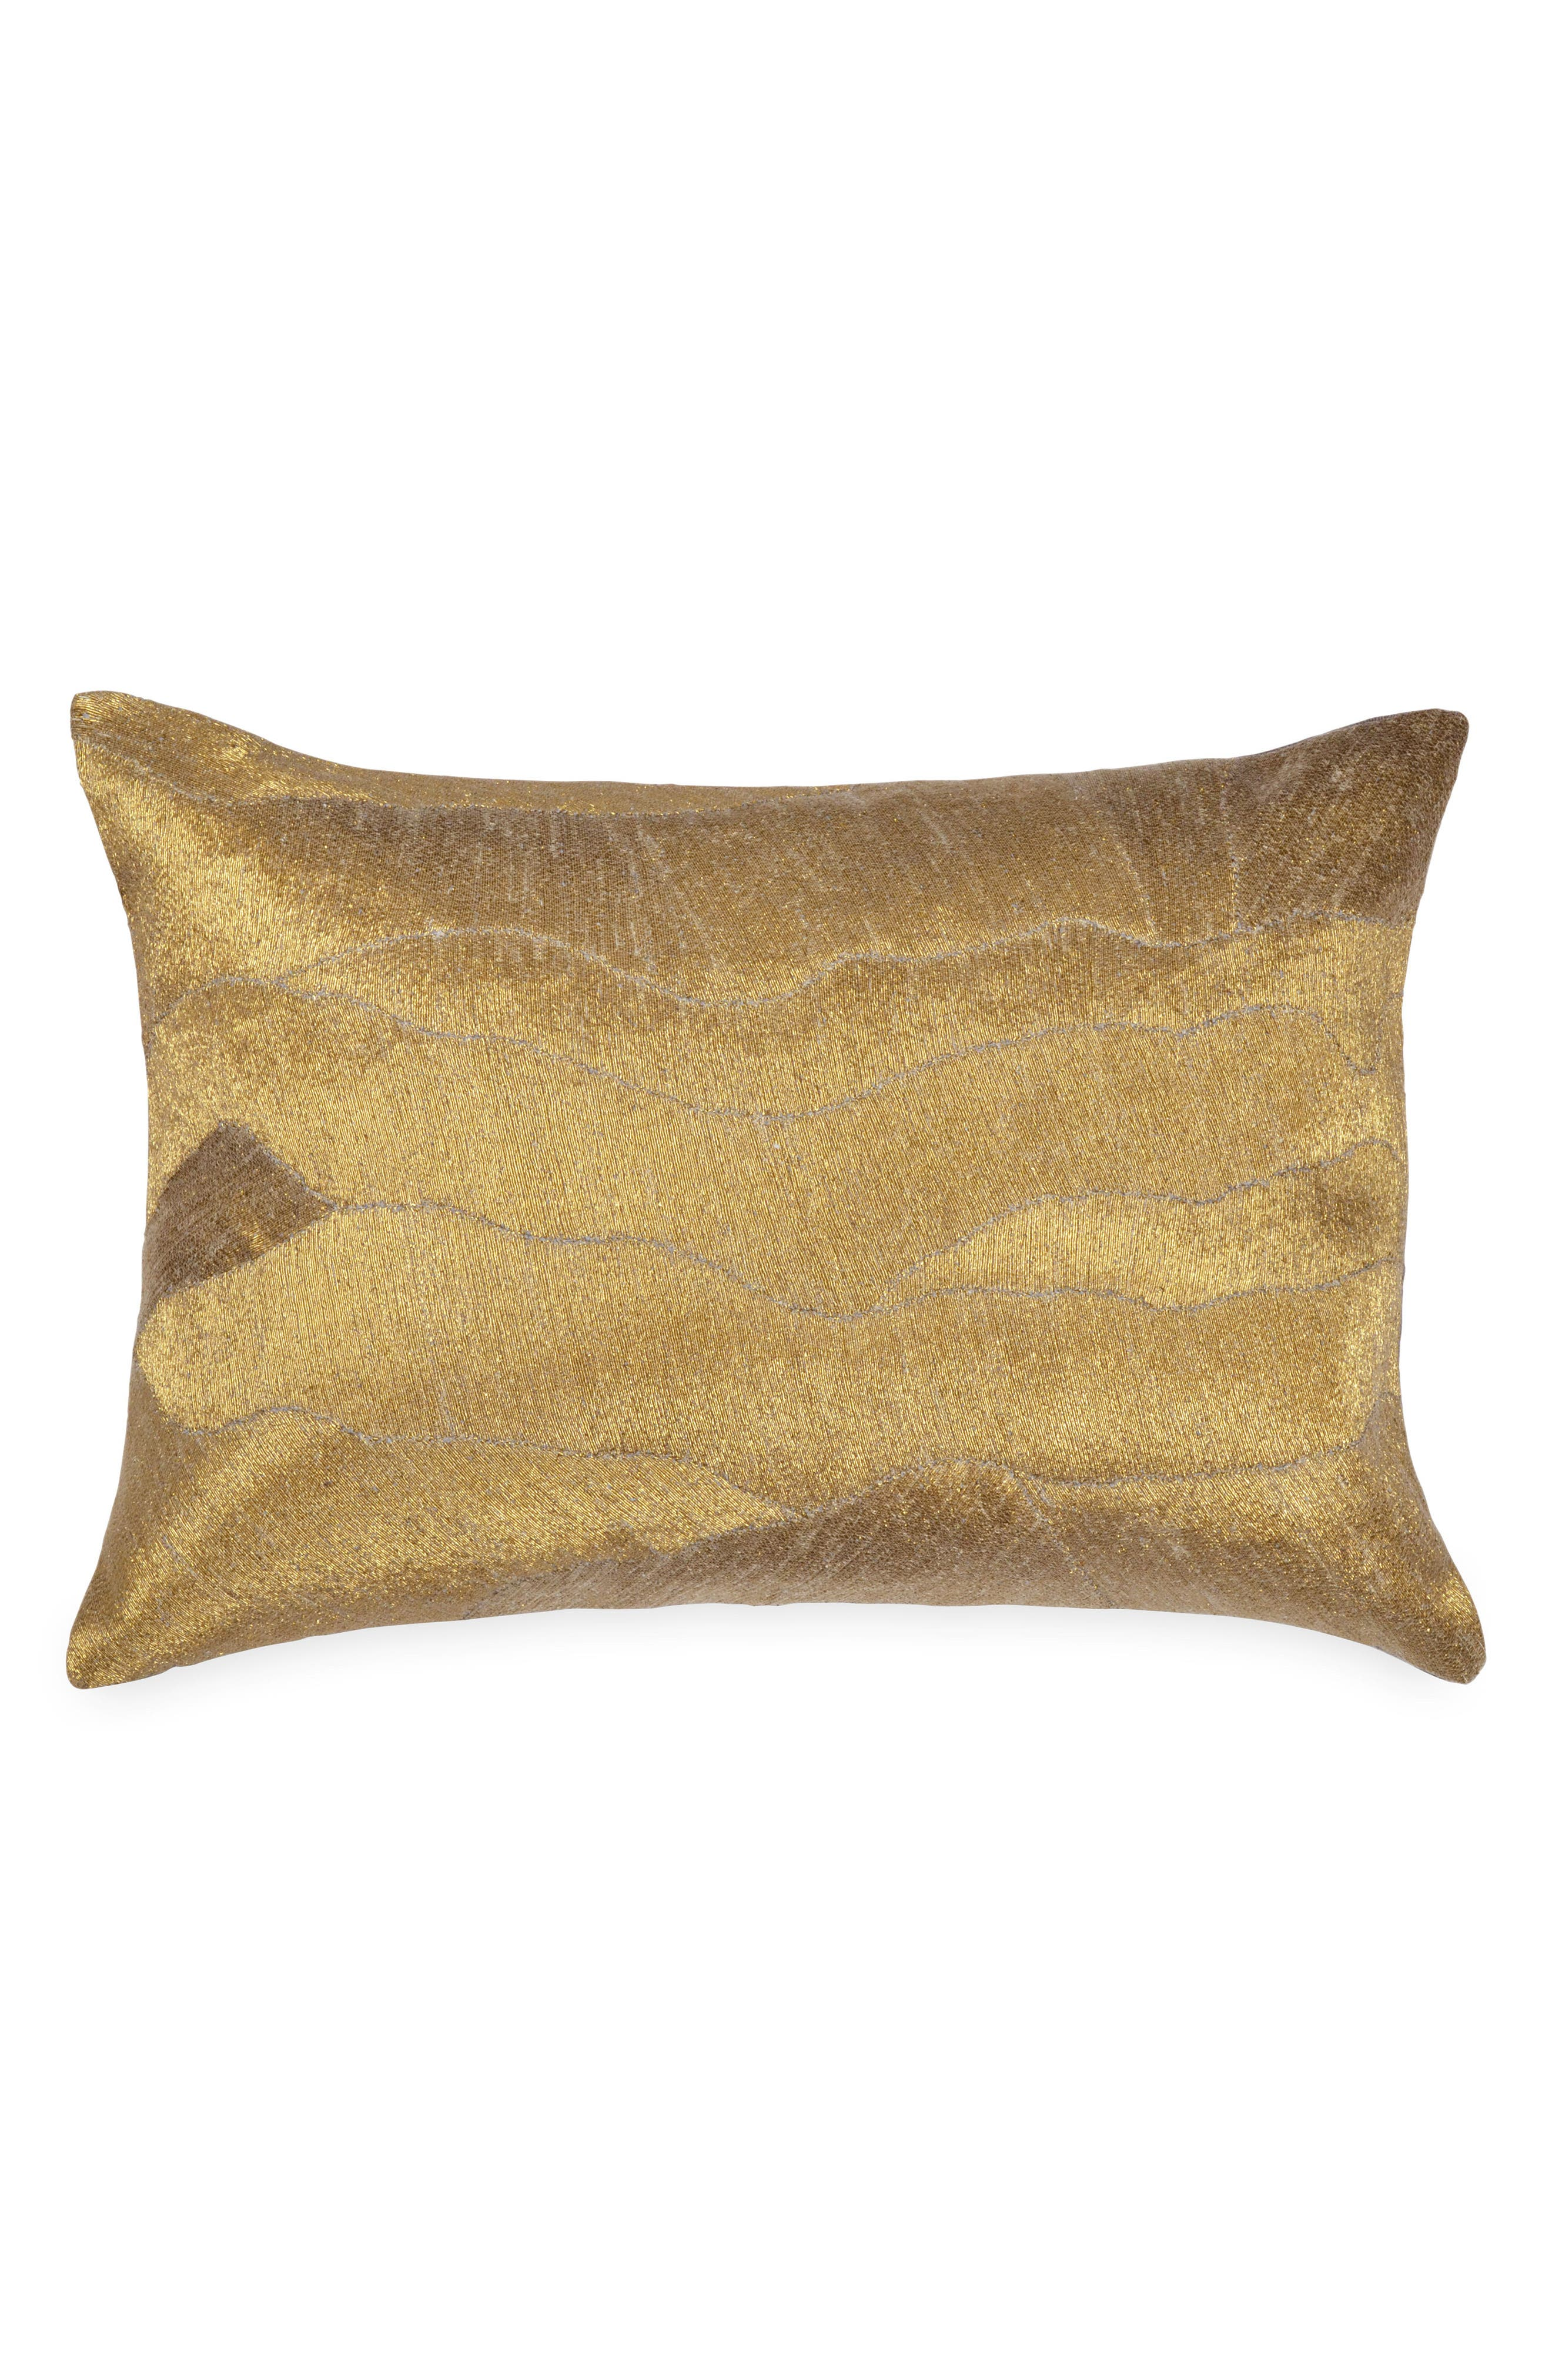 After The Storm Accent Pillow,                         Main,                         color, Gold